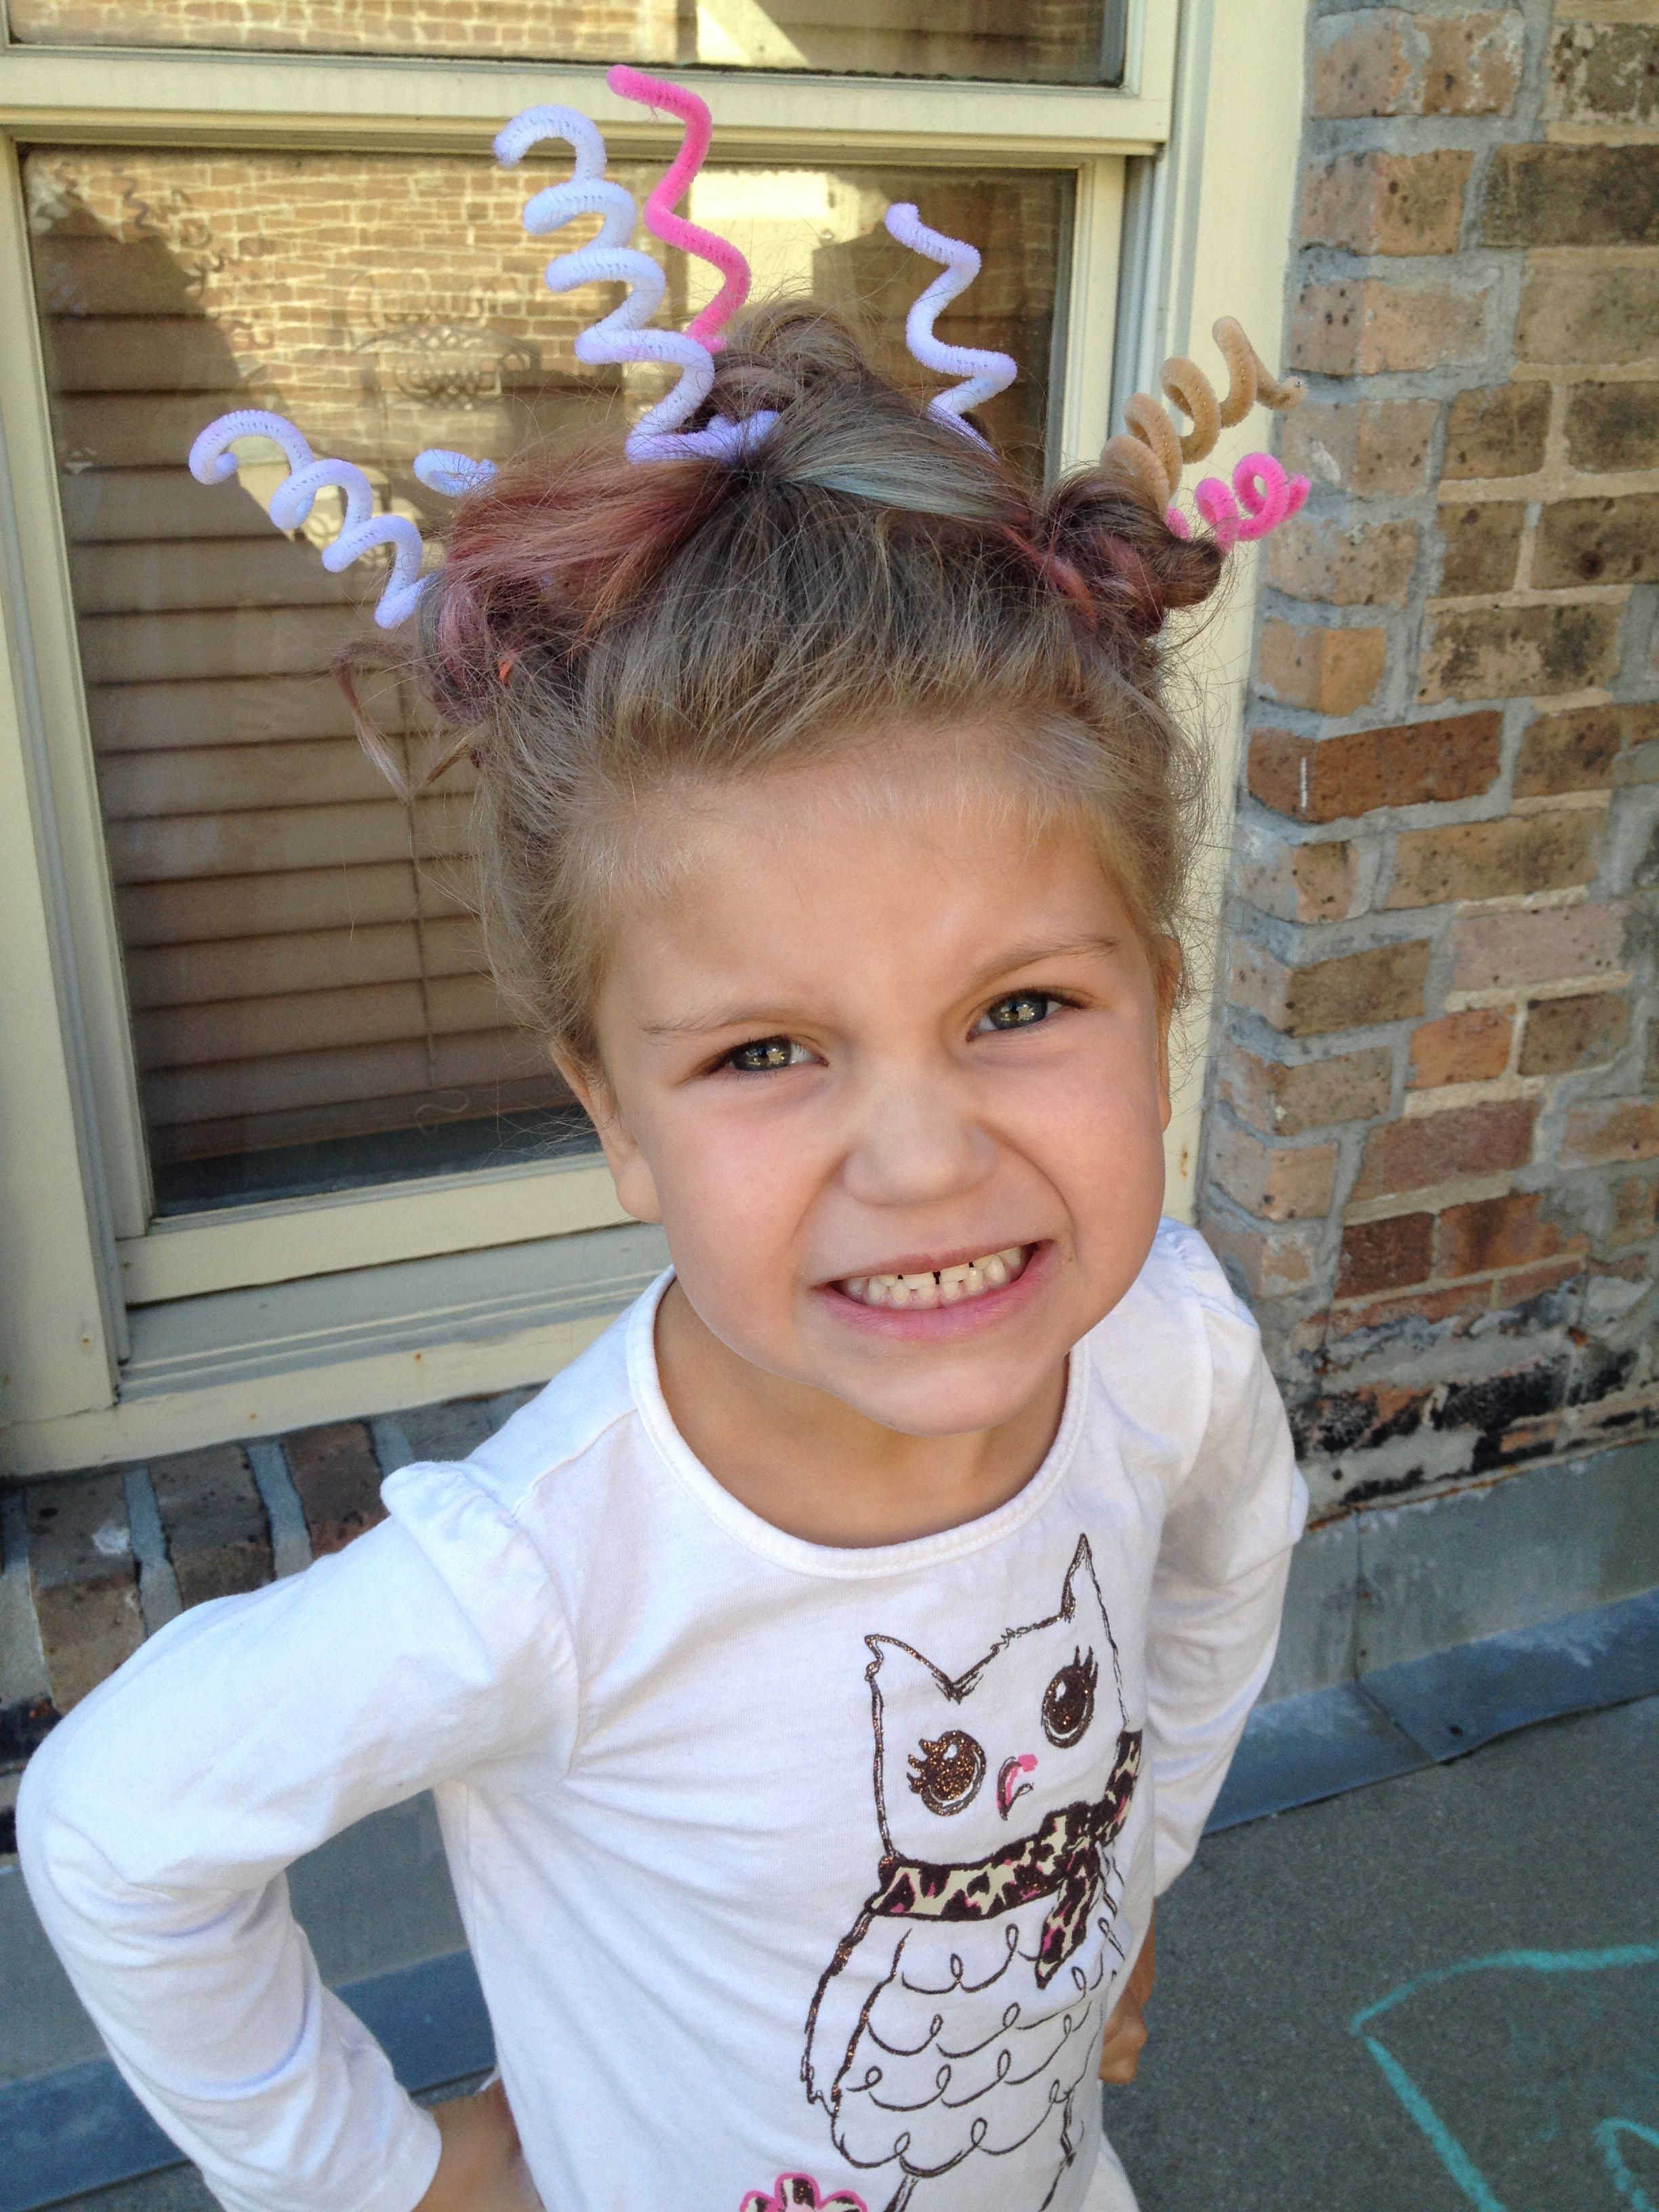 Crazy Hair Day For Preschool Kids Hairstyles Girls Toddler Hairstyles Girl Crazy Hair Days